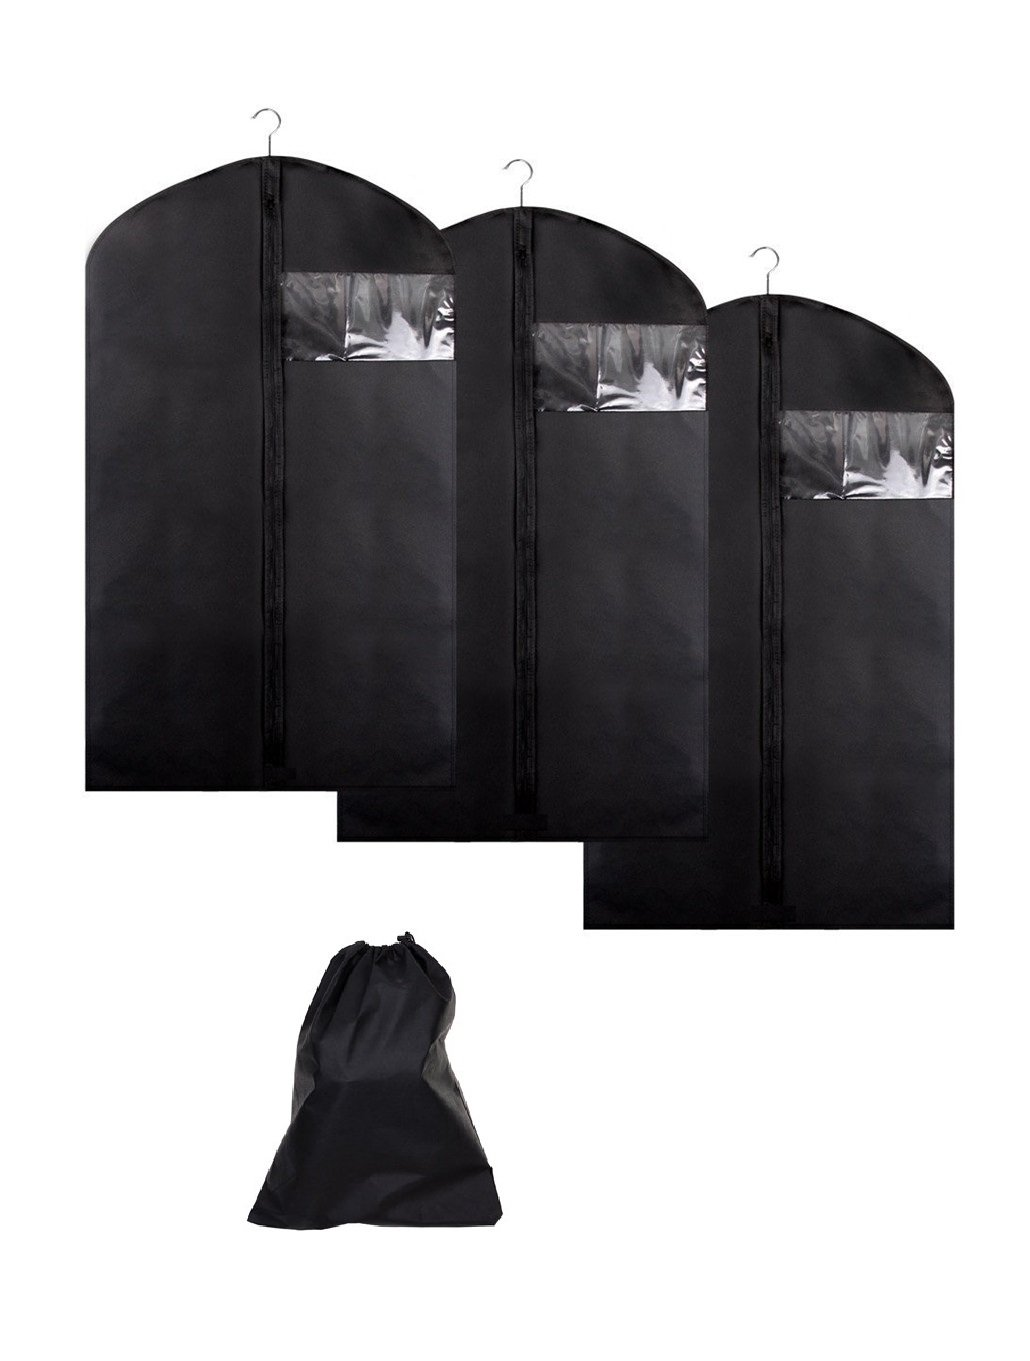 "Garment Bag Covers Breathable Garment Bags with Shoe Bag, 40""x24"" Suit Bag Covers with Clear Window Set of 3 (Black)"